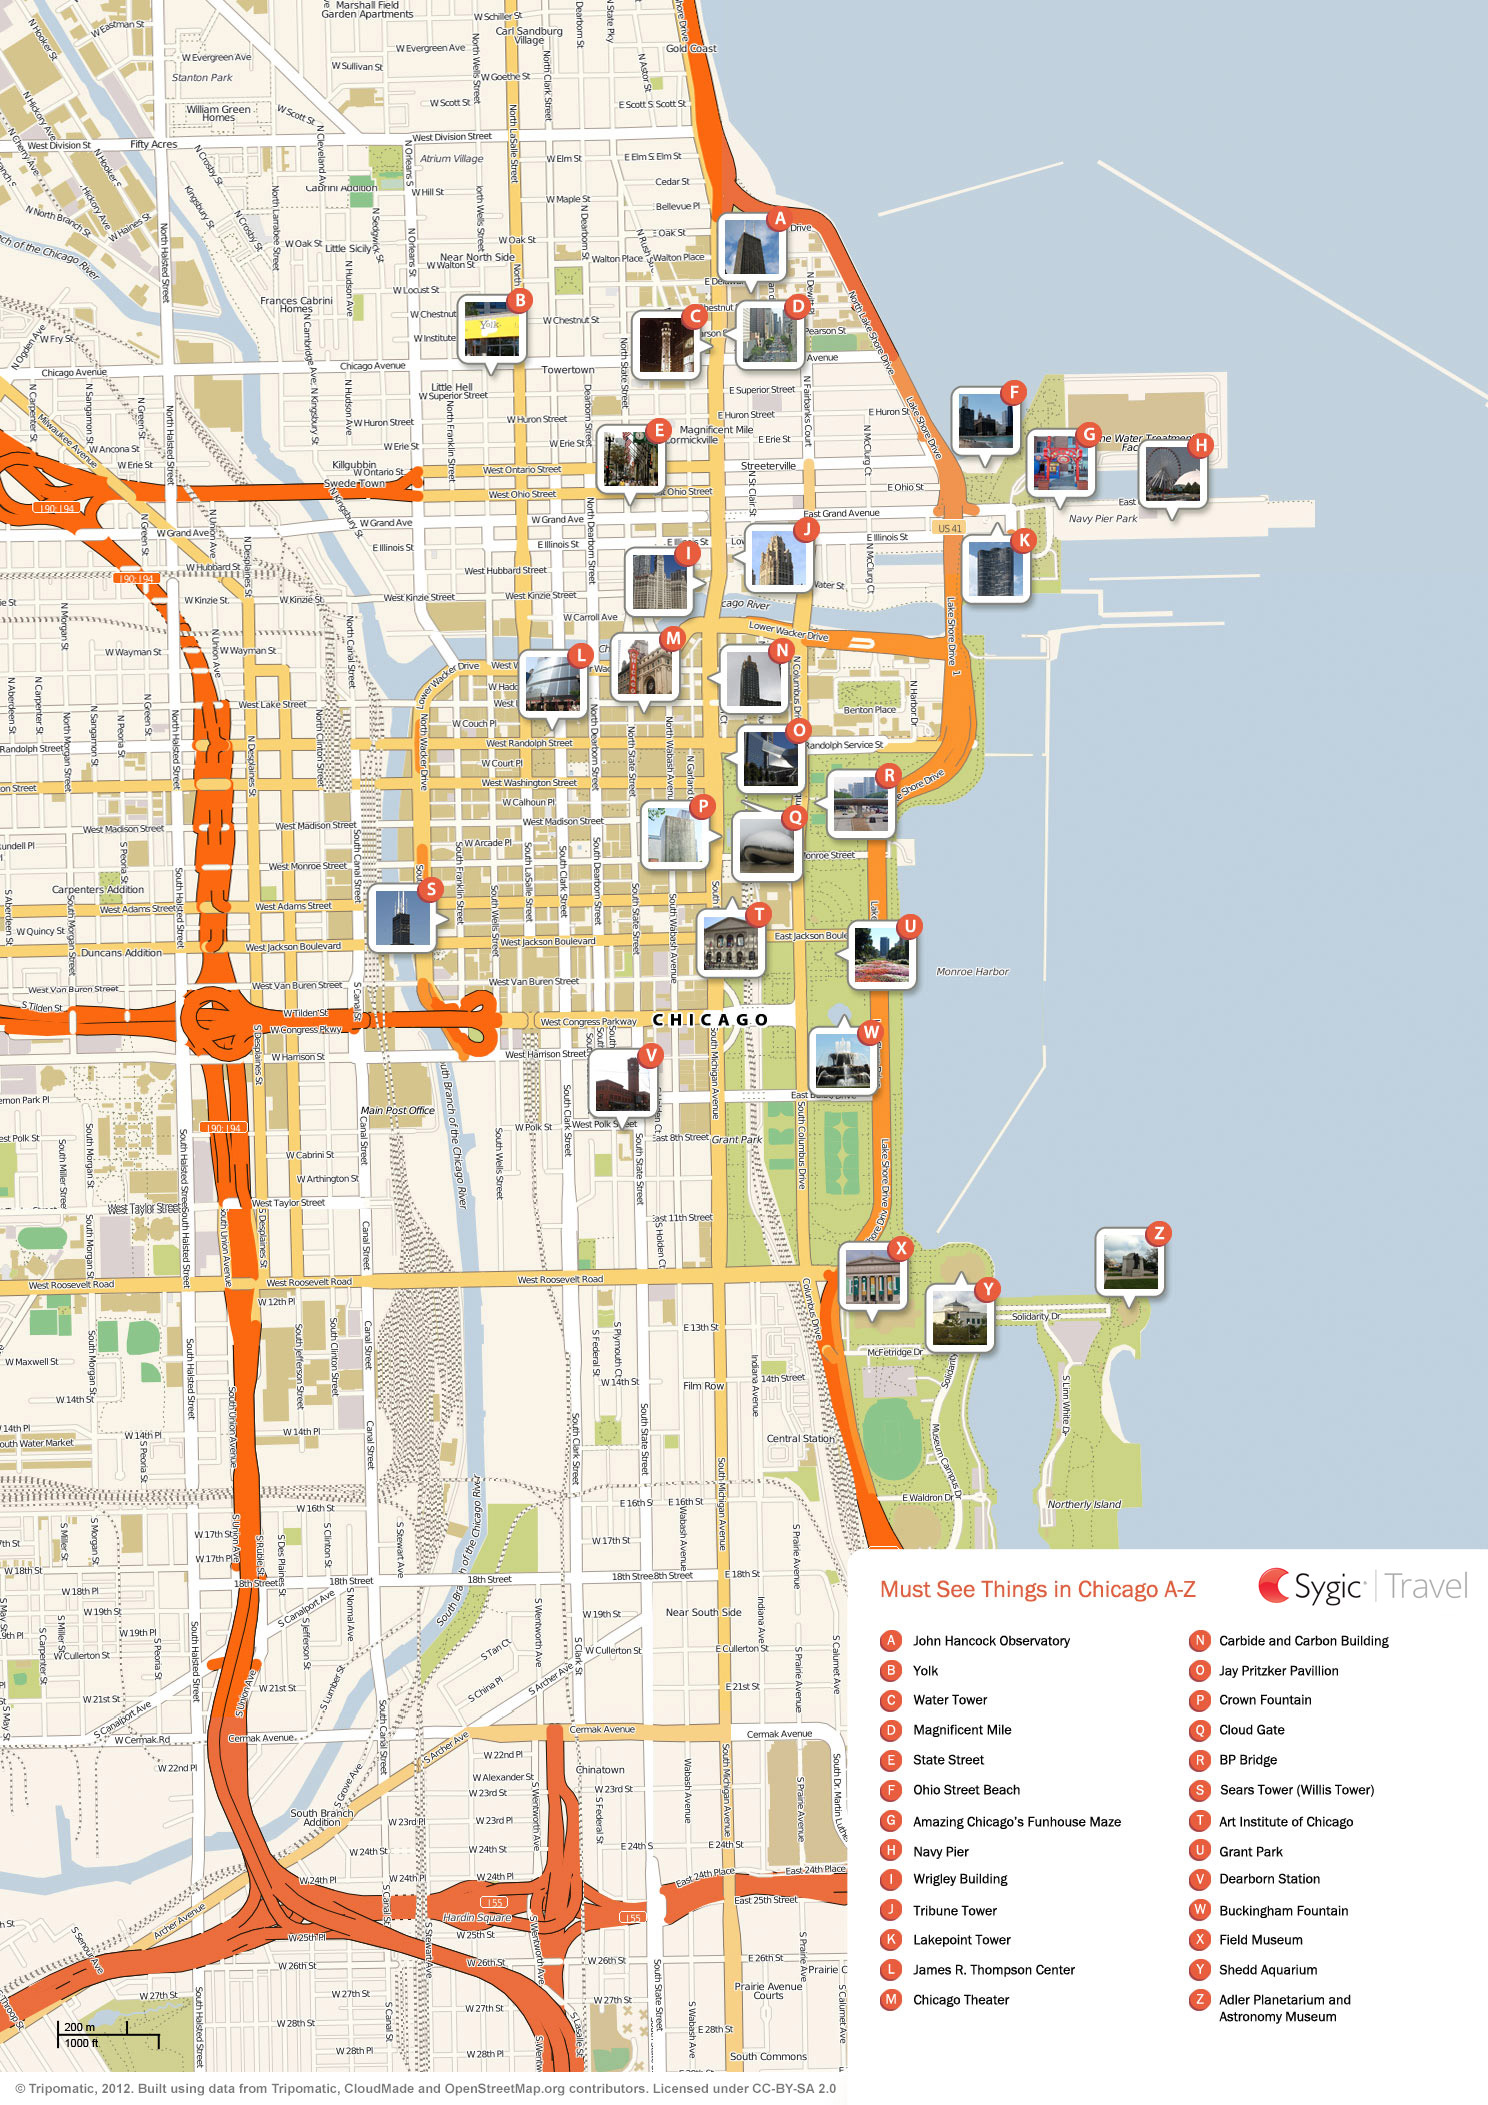 Chicago Printable Tourist Map – Top Tourist Attractions Map In Chicago